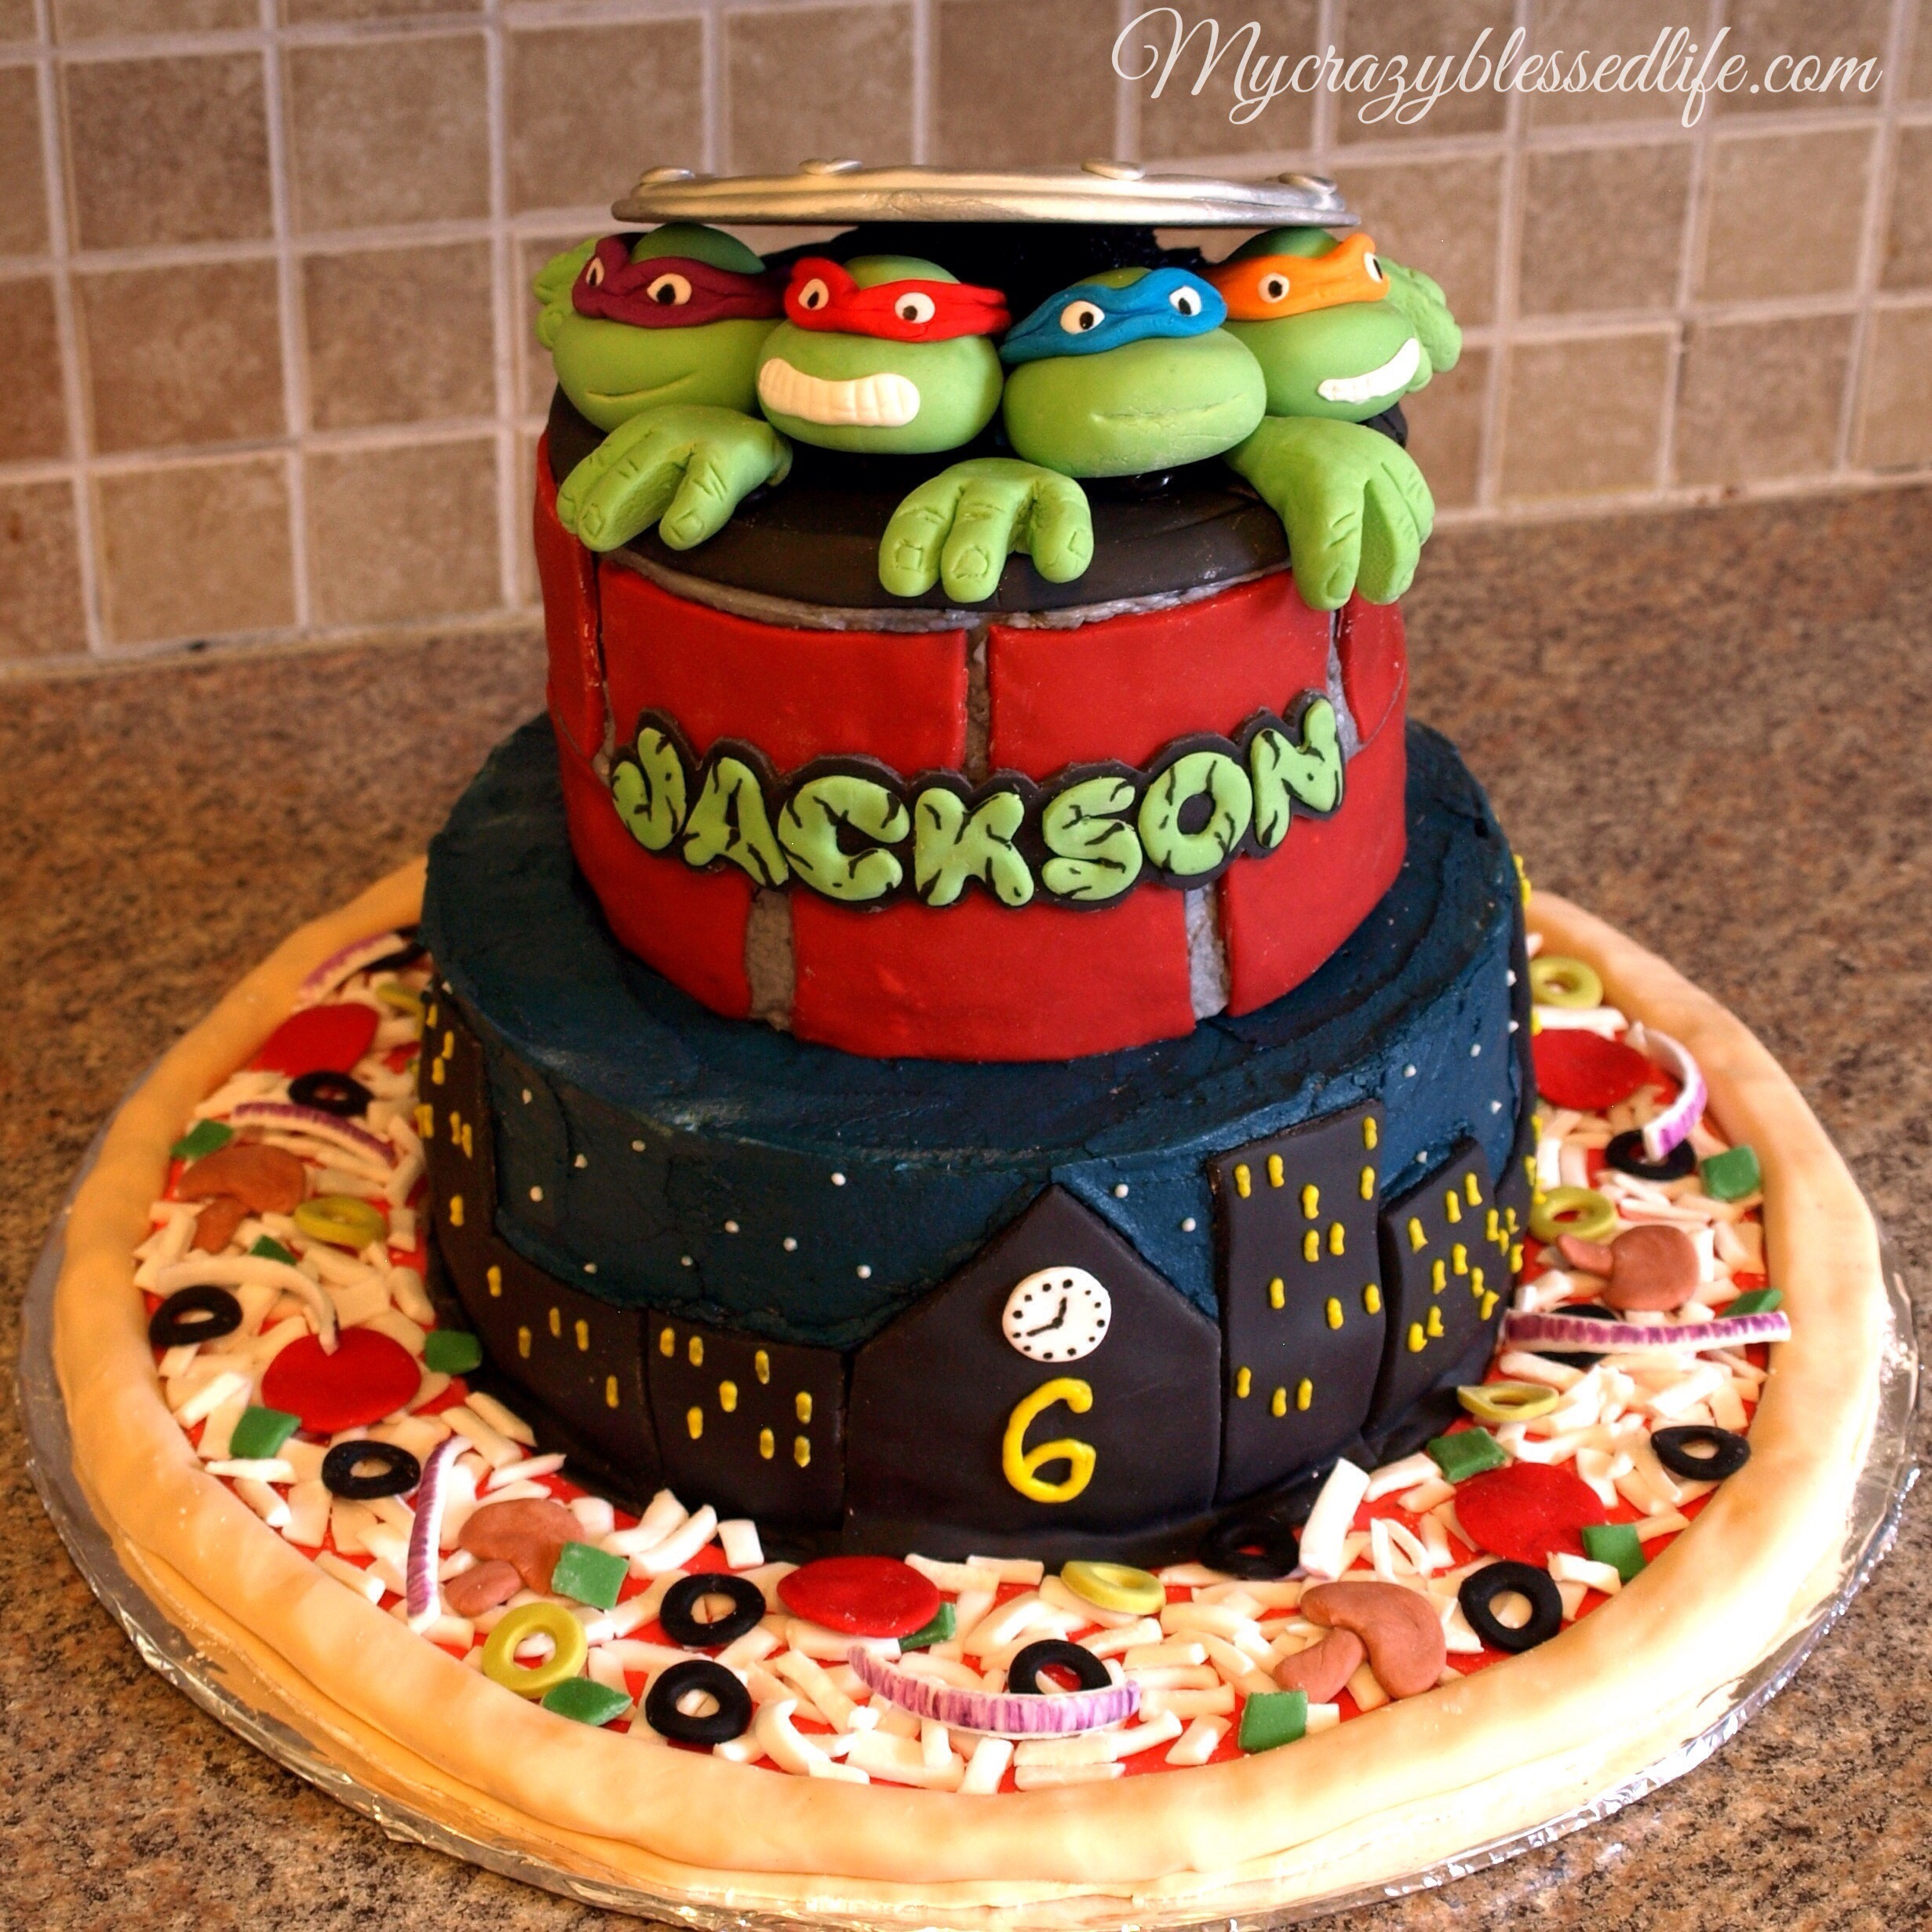 Ninja Turtles Cake | My Crazy Blessed Life!